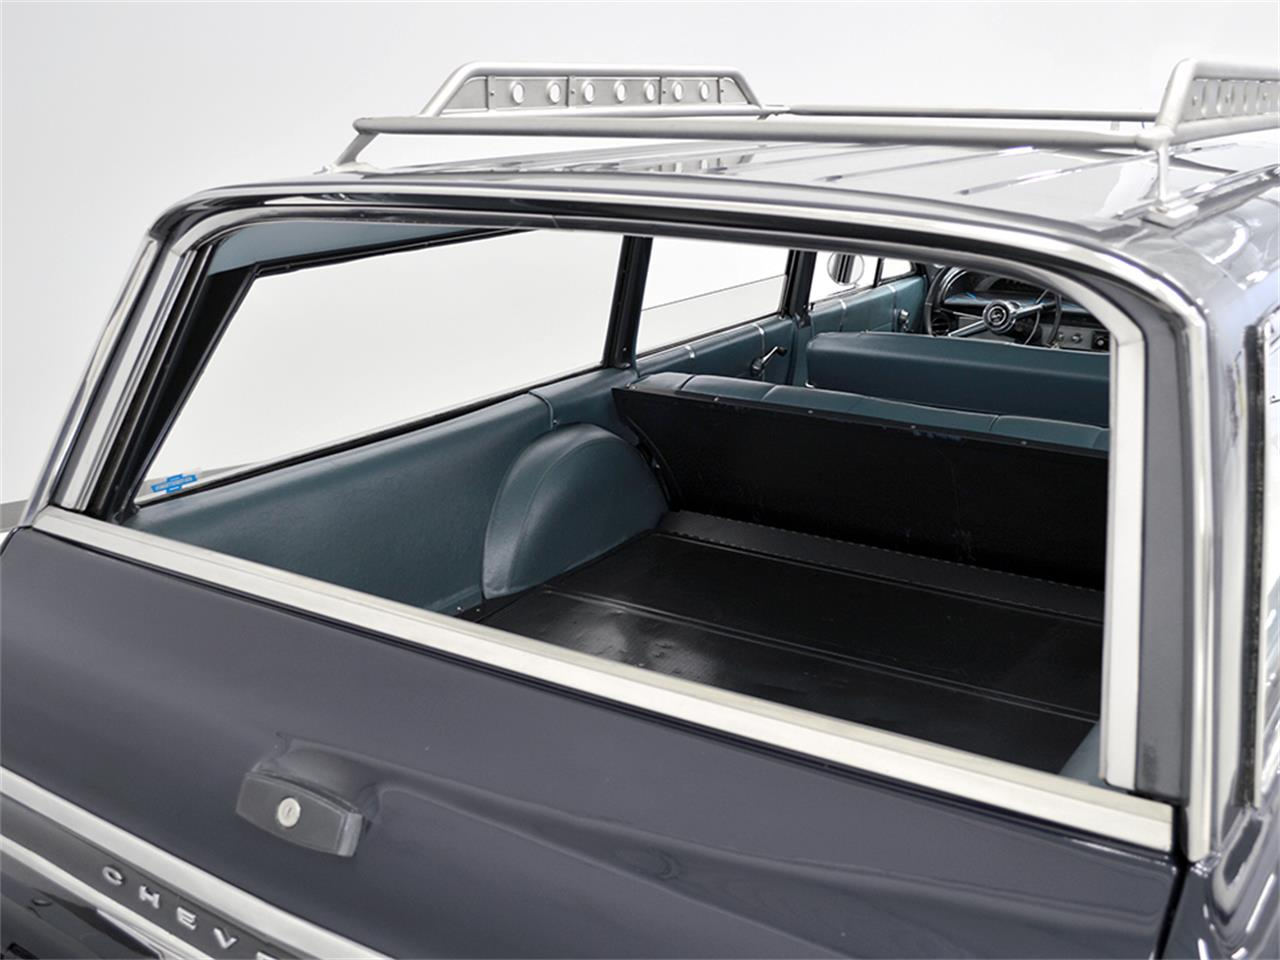 Large Picture of '64 Chevrolet Impala located in Macedonia Ohio - $22,900.00 Offered by Harwood Motors, LTD. - LEX8